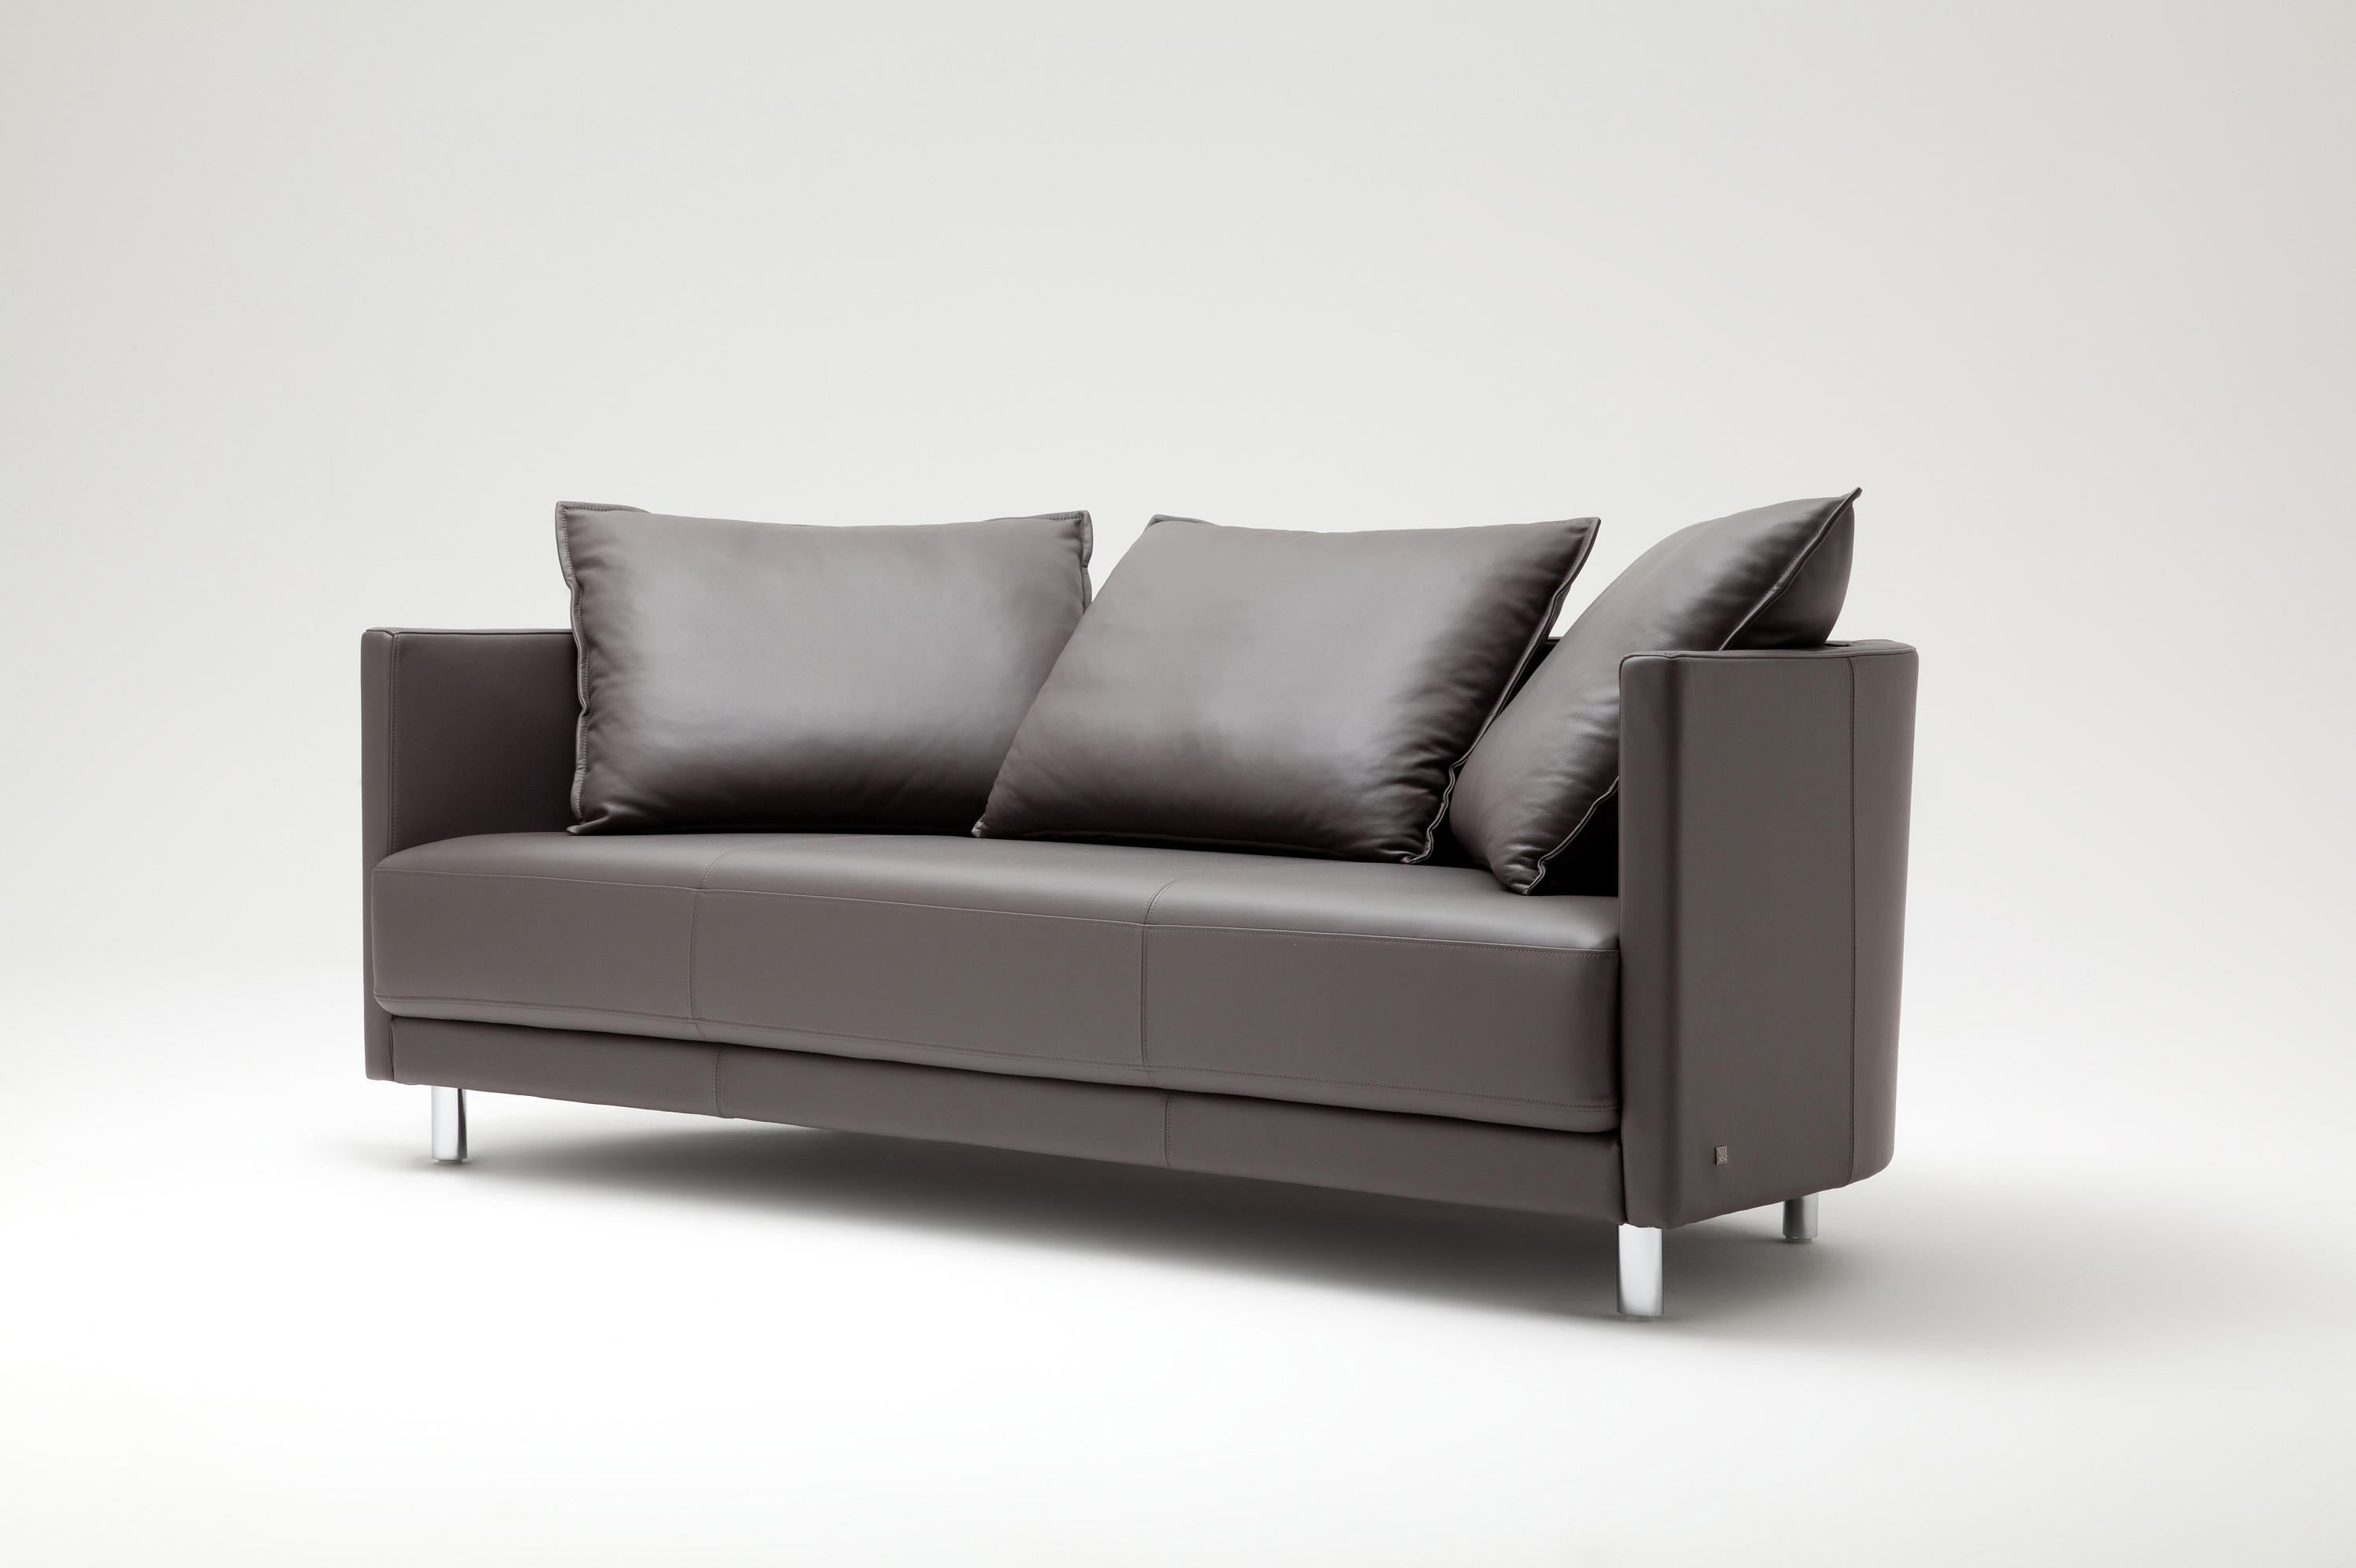 rolf benz onda sofas von rolf benz architonic. Black Bedroom Furniture Sets. Home Design Ideas